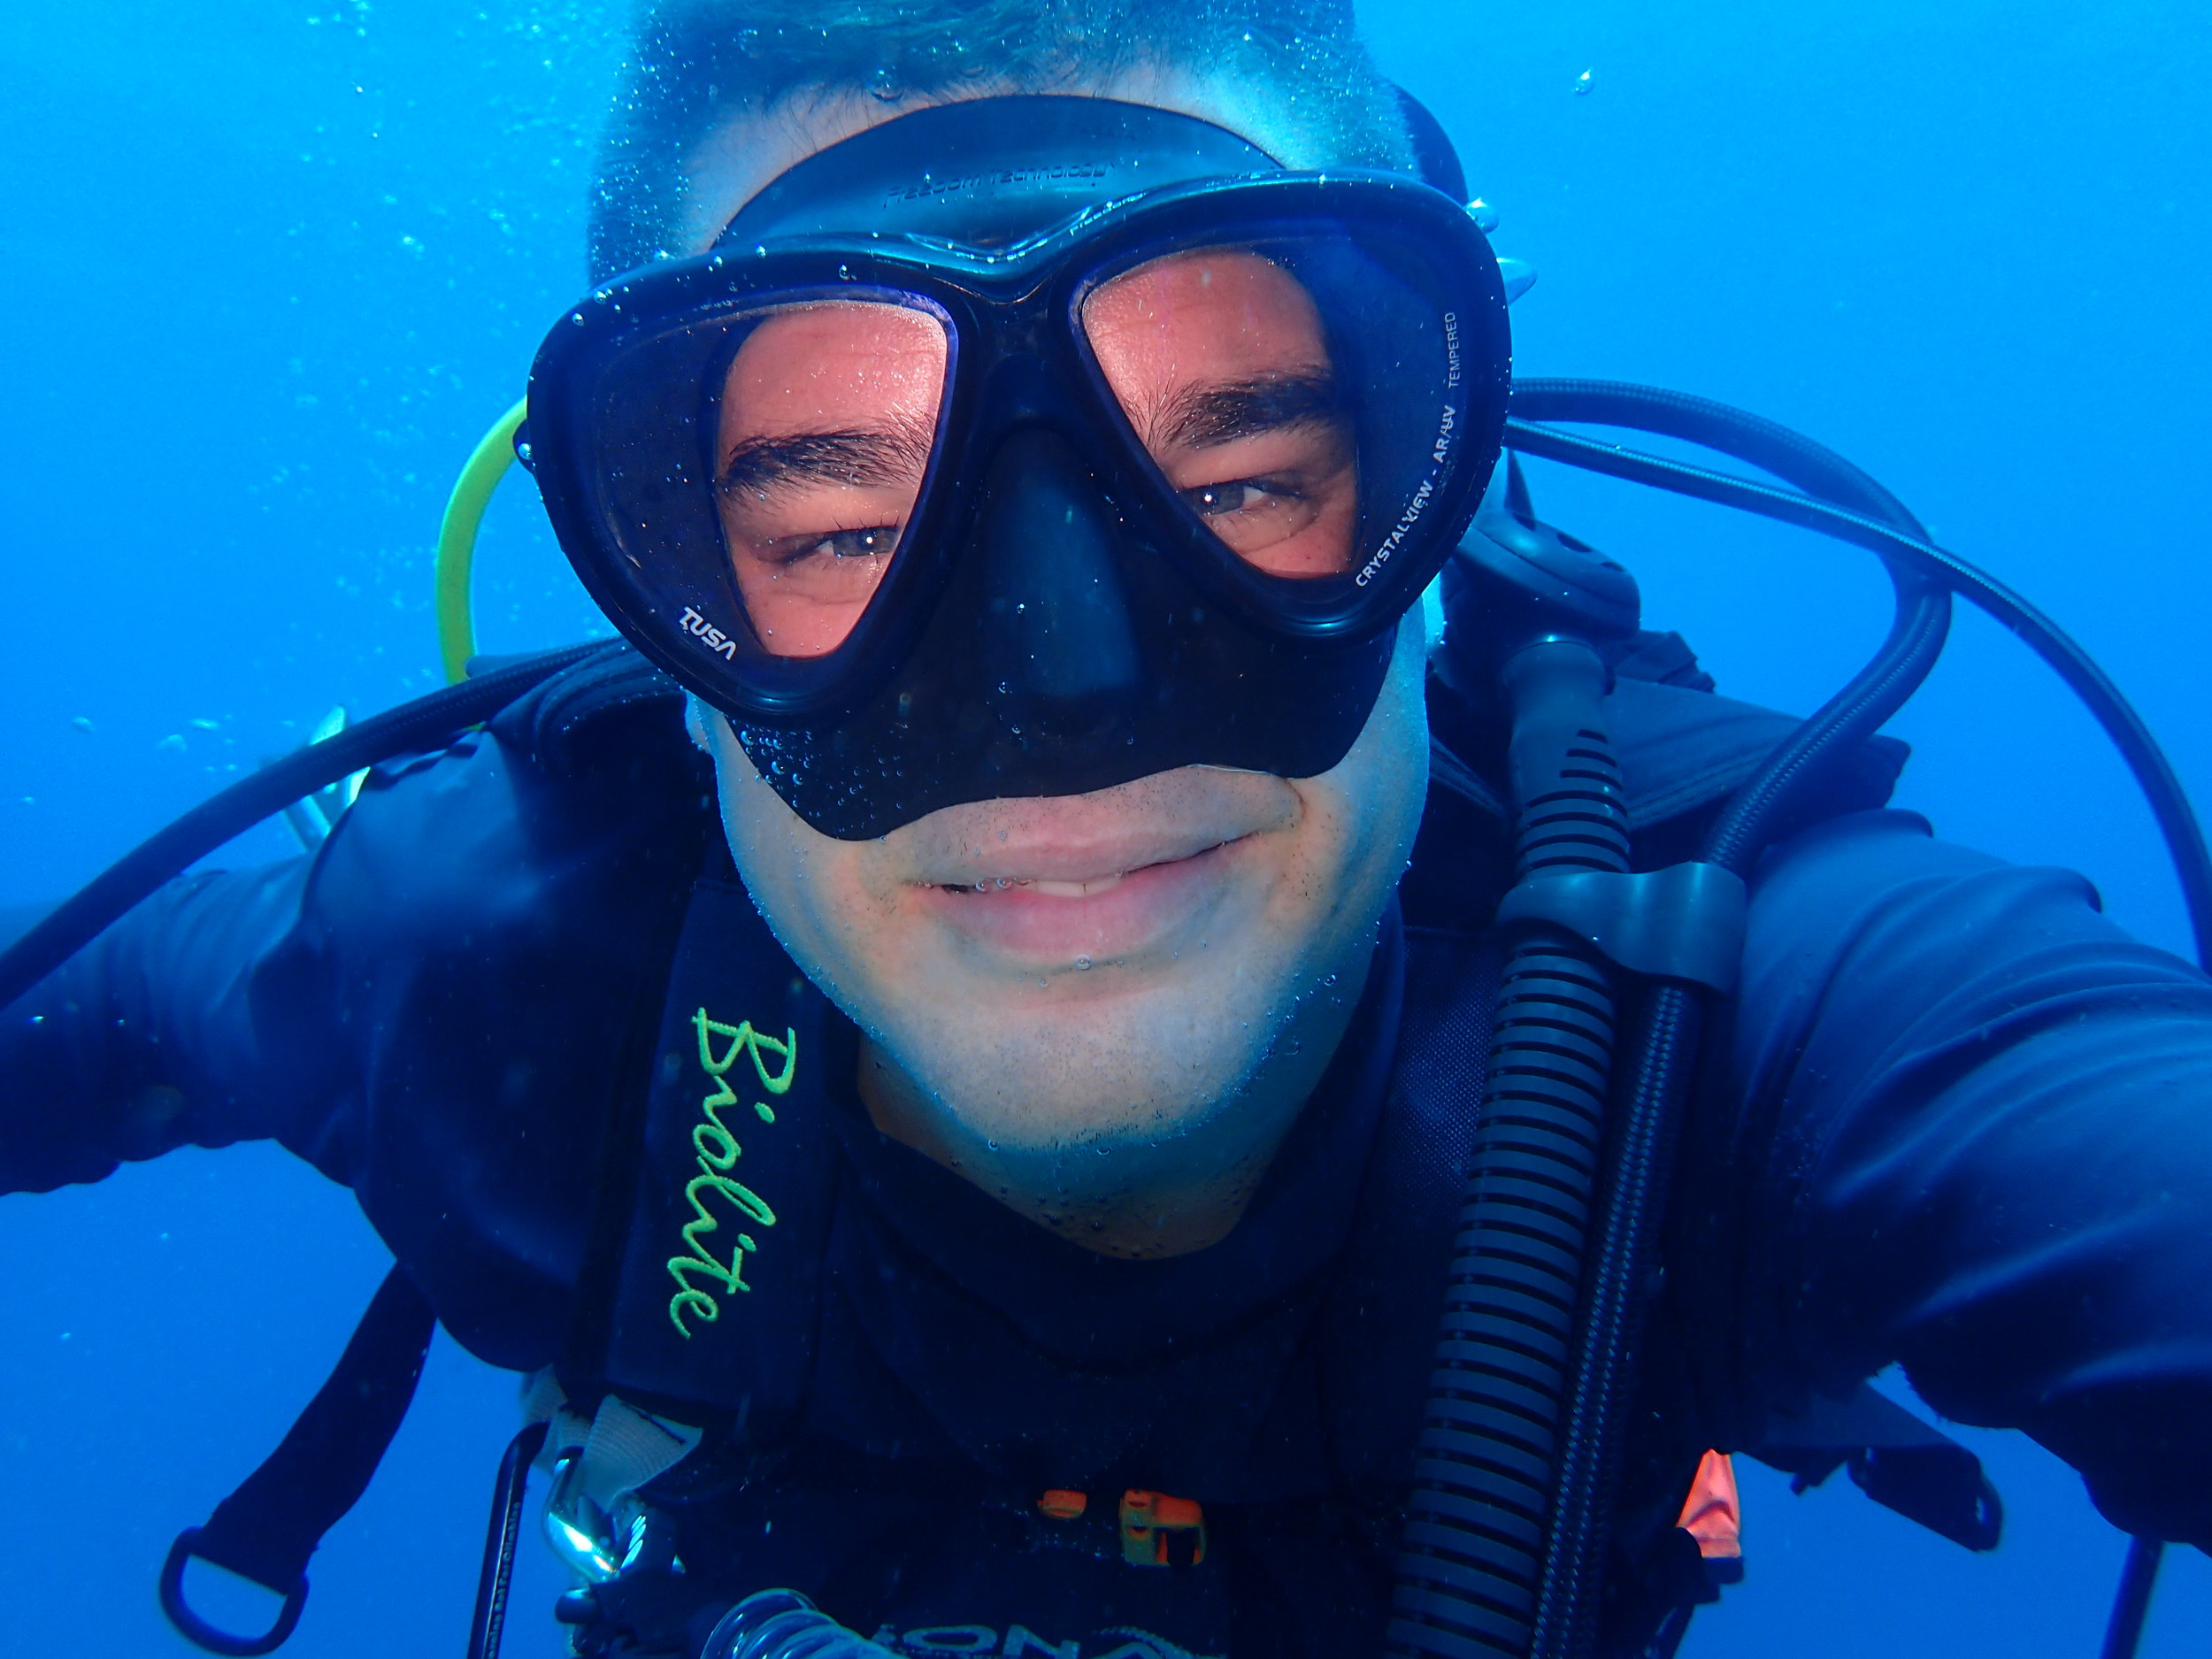 My first decent underwater selfie